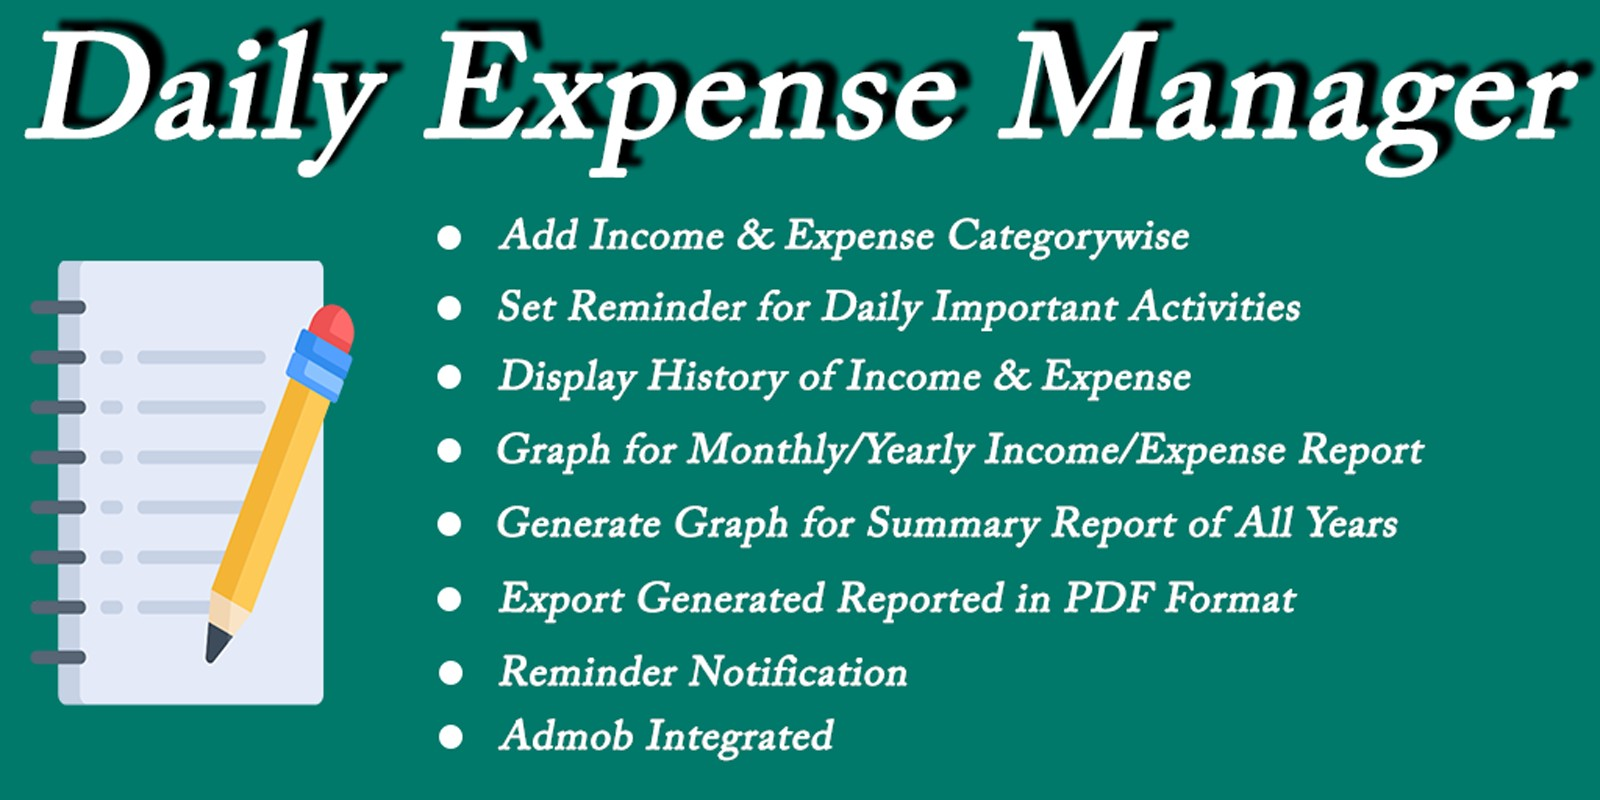 Daily Expense Manager - Android Source Code